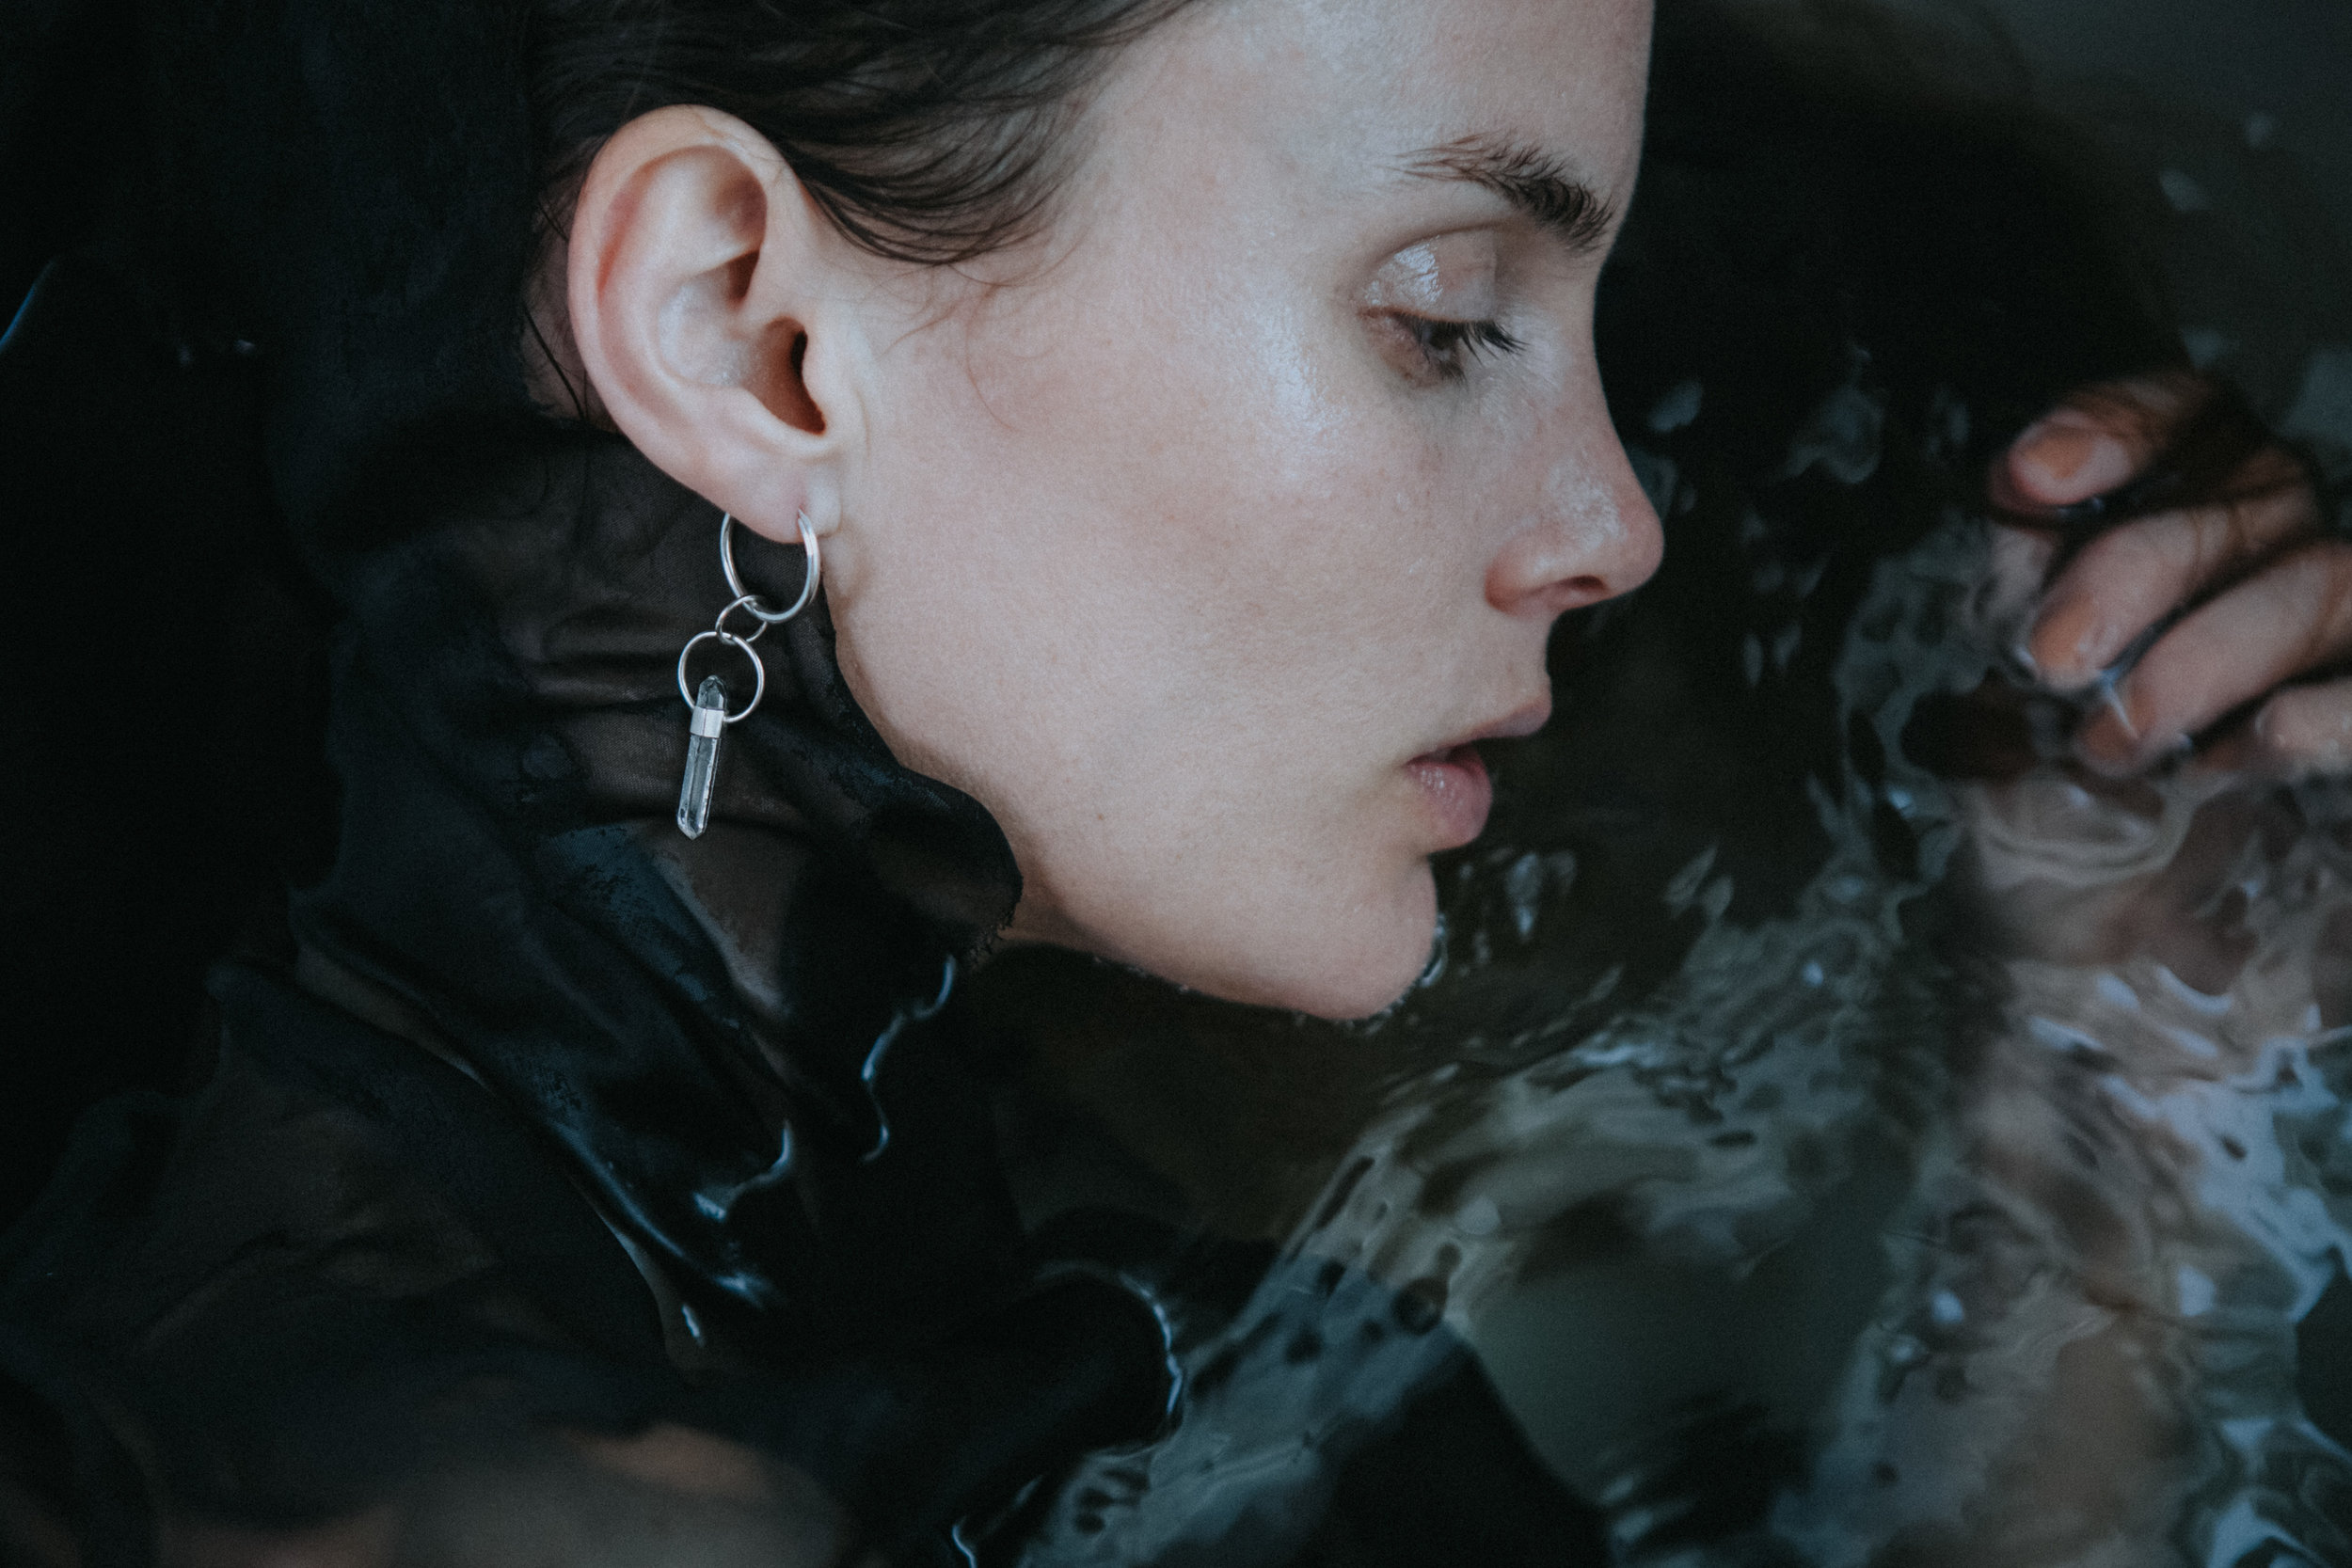 EYESEEi. EXPANSION earring. Clear quartz crystal and Sterling silver. Price: 440 SEK  Photo; Anna Maria Liljestrand